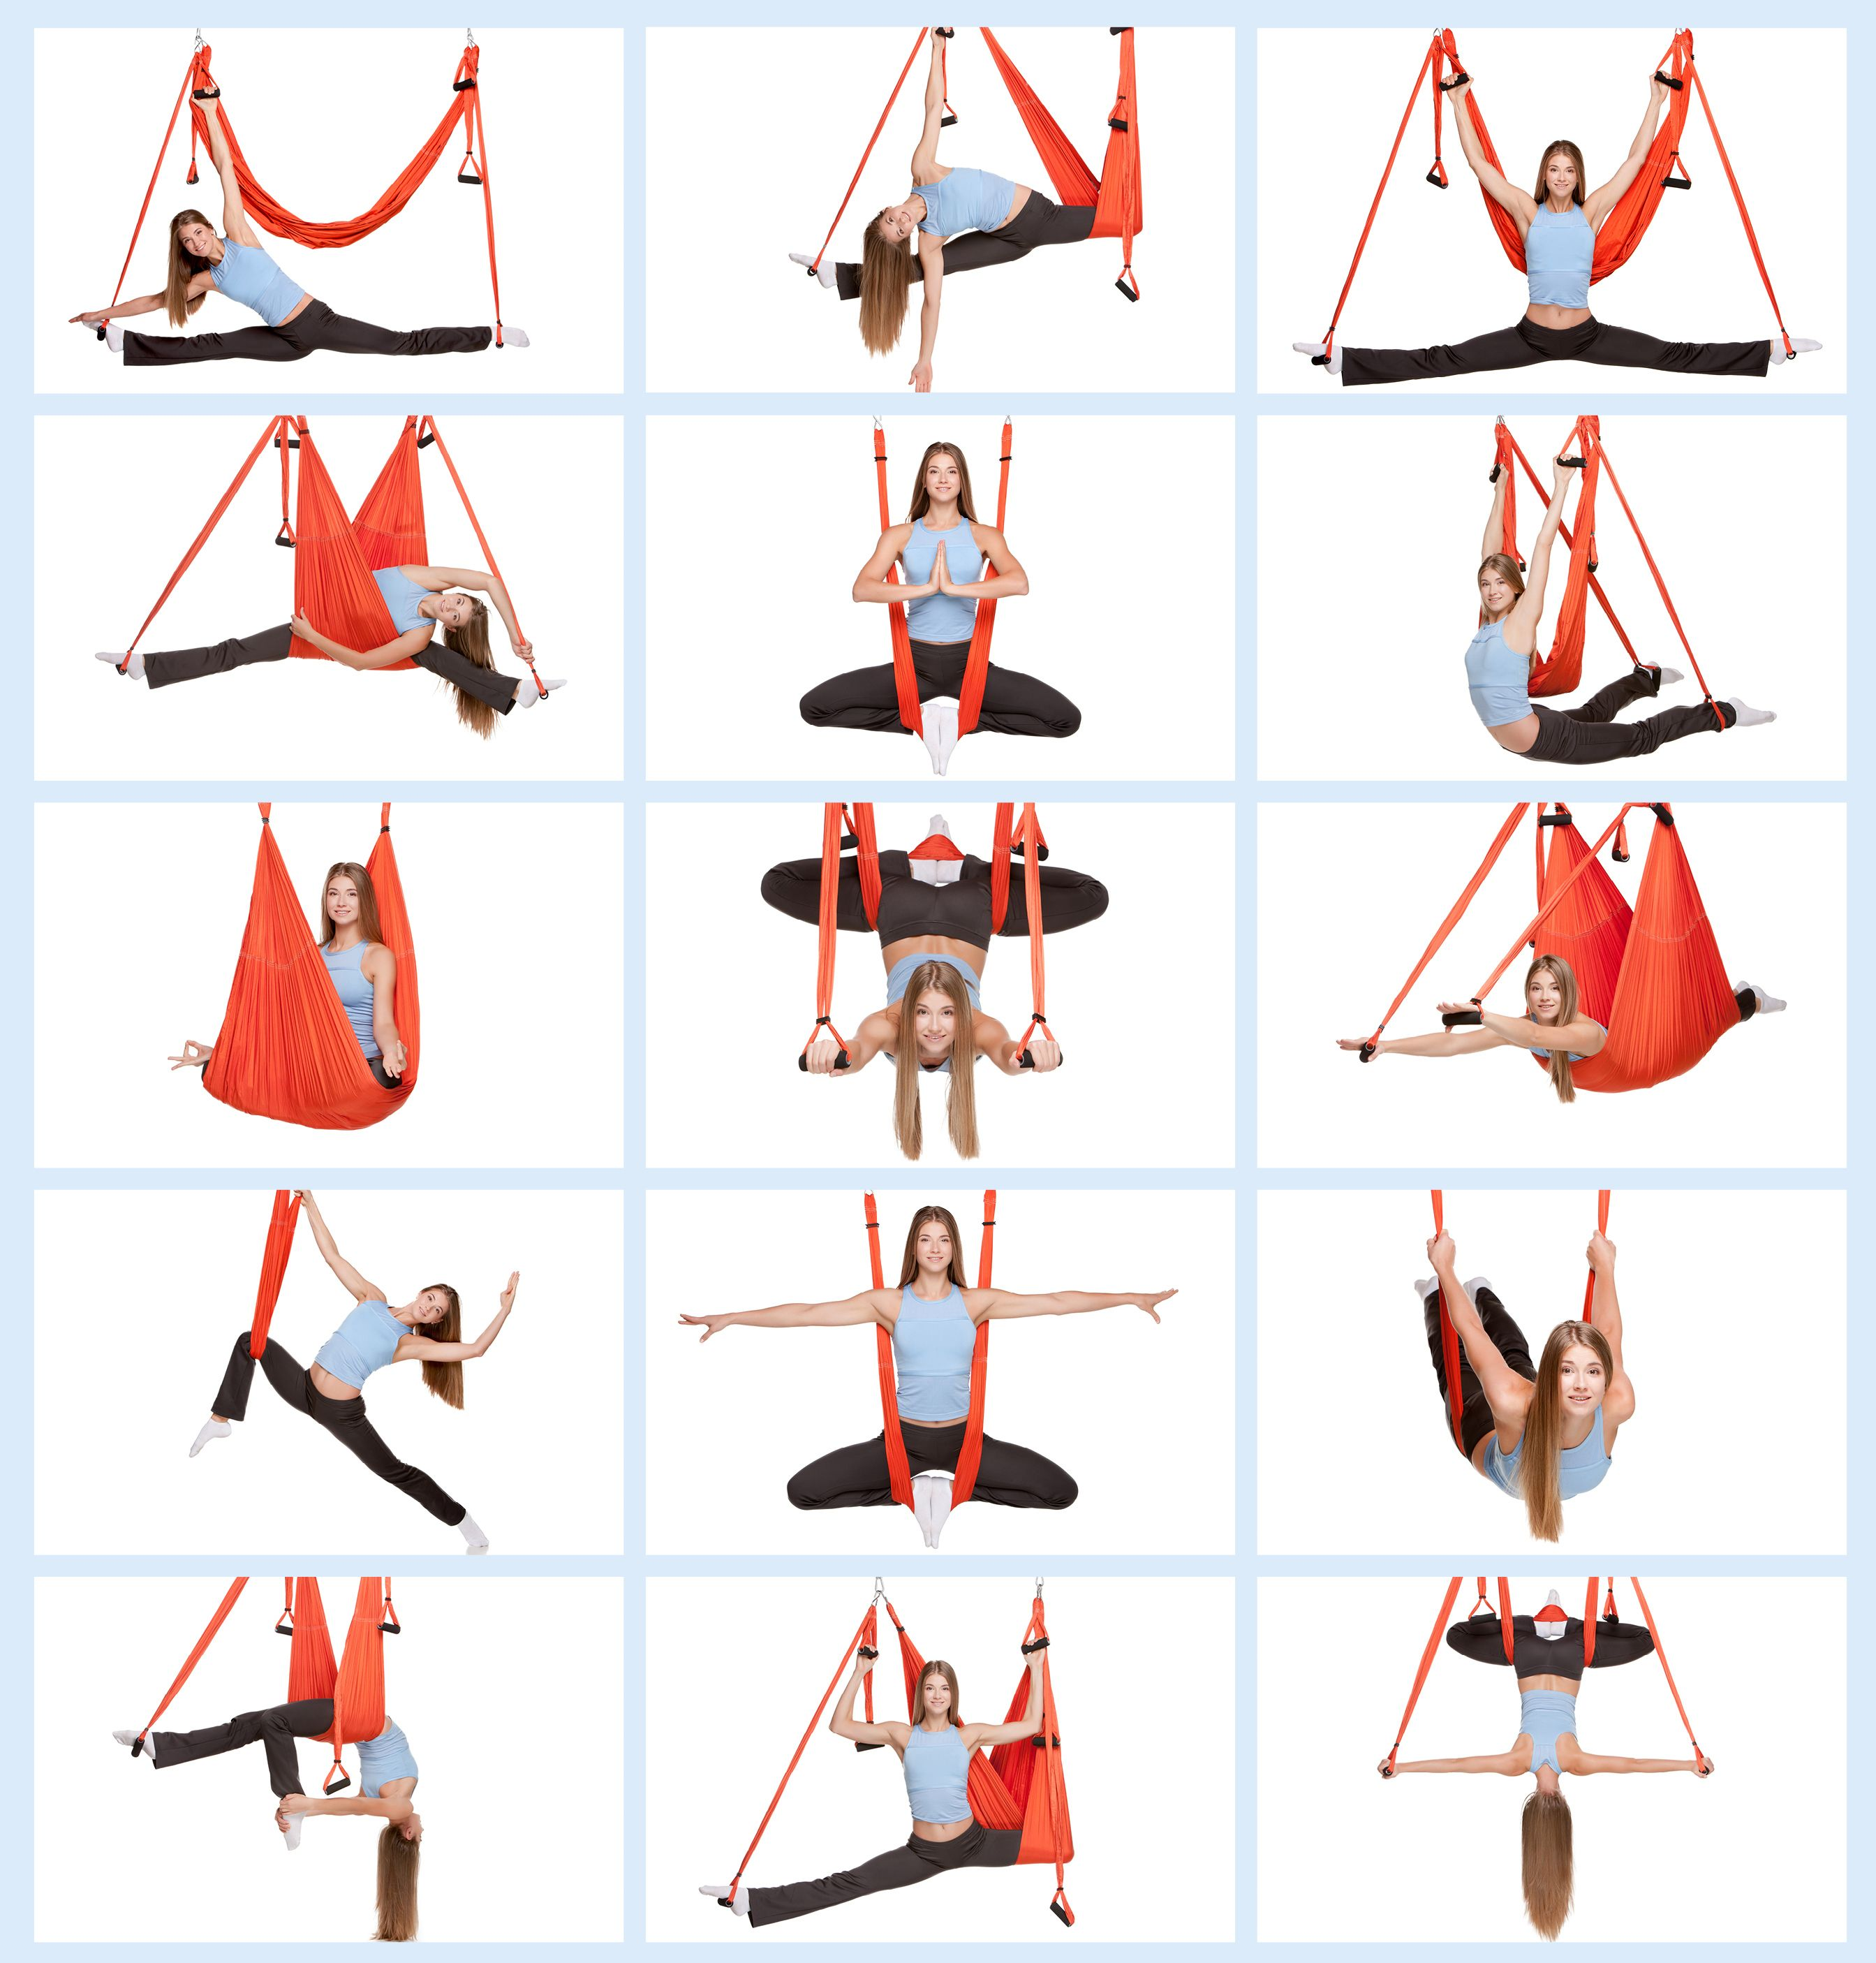 Aerial Yoga Swing Anti Gravity Yoga Swing With Daisy Chain Aerial Yoga Hammock Yoga Hammock Yoga Swing